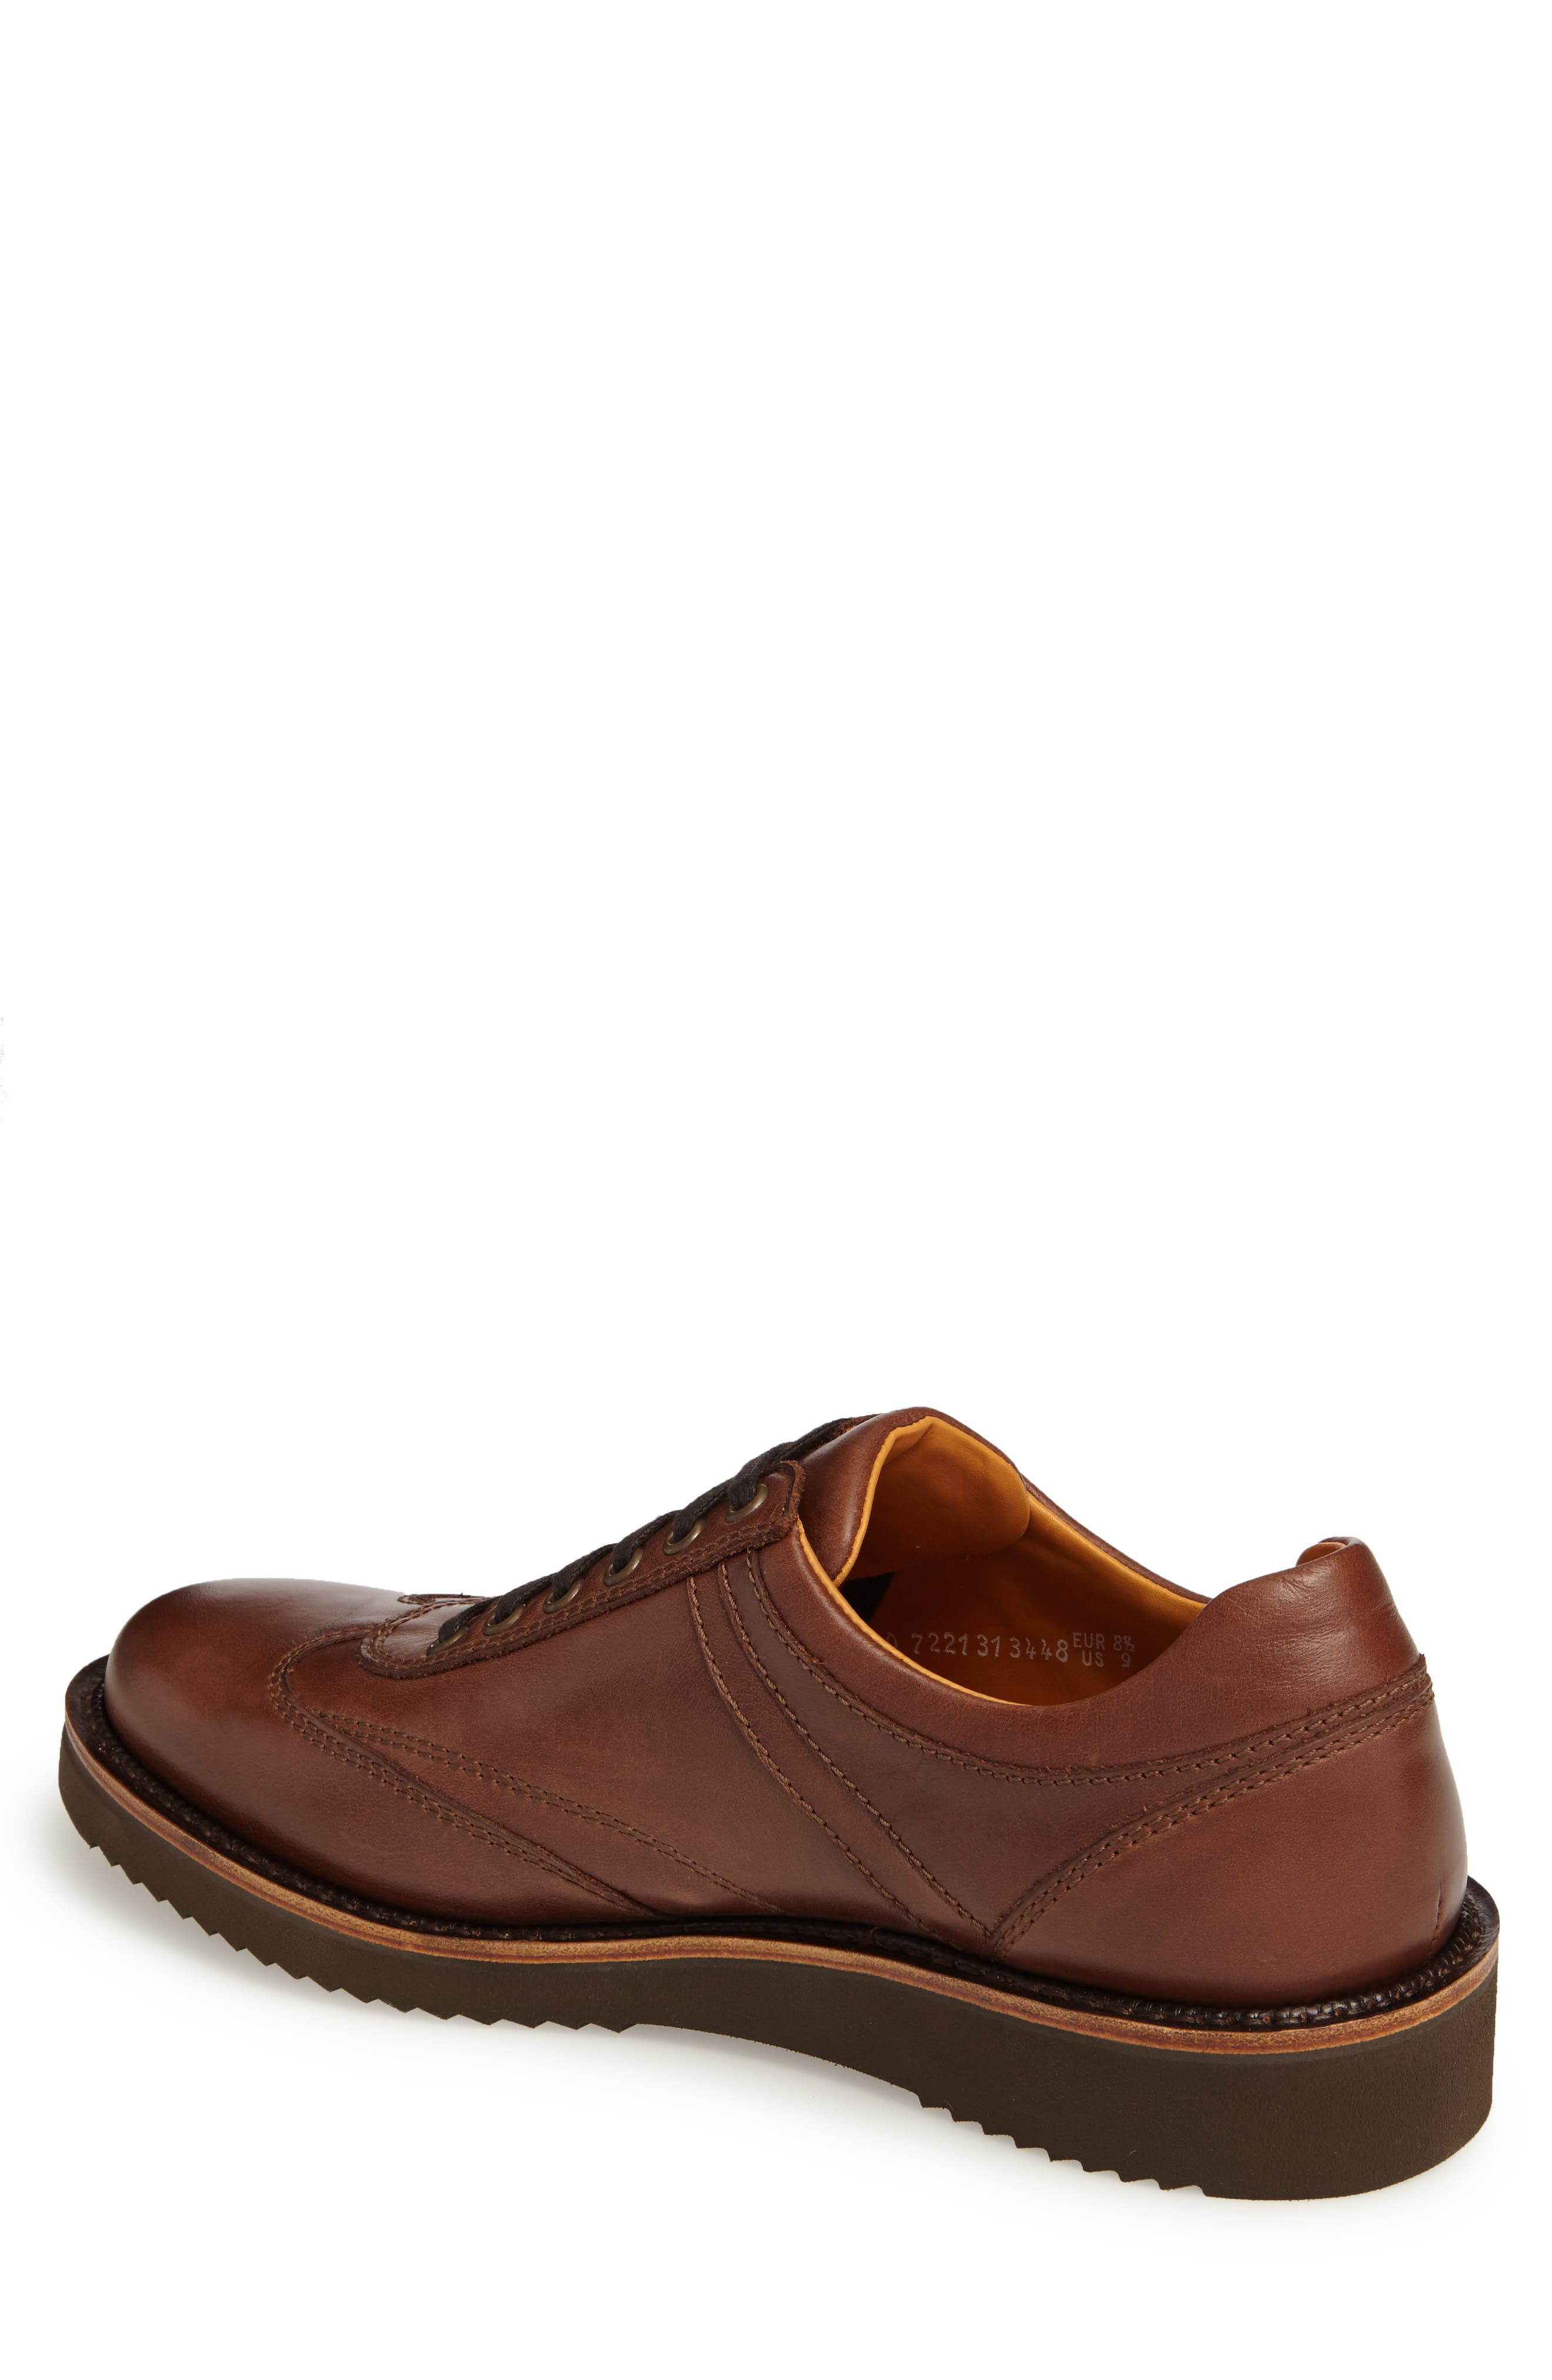 Adriano Sneaker,                             Alternate thumbnail 2, color,                             Chestnut Leather